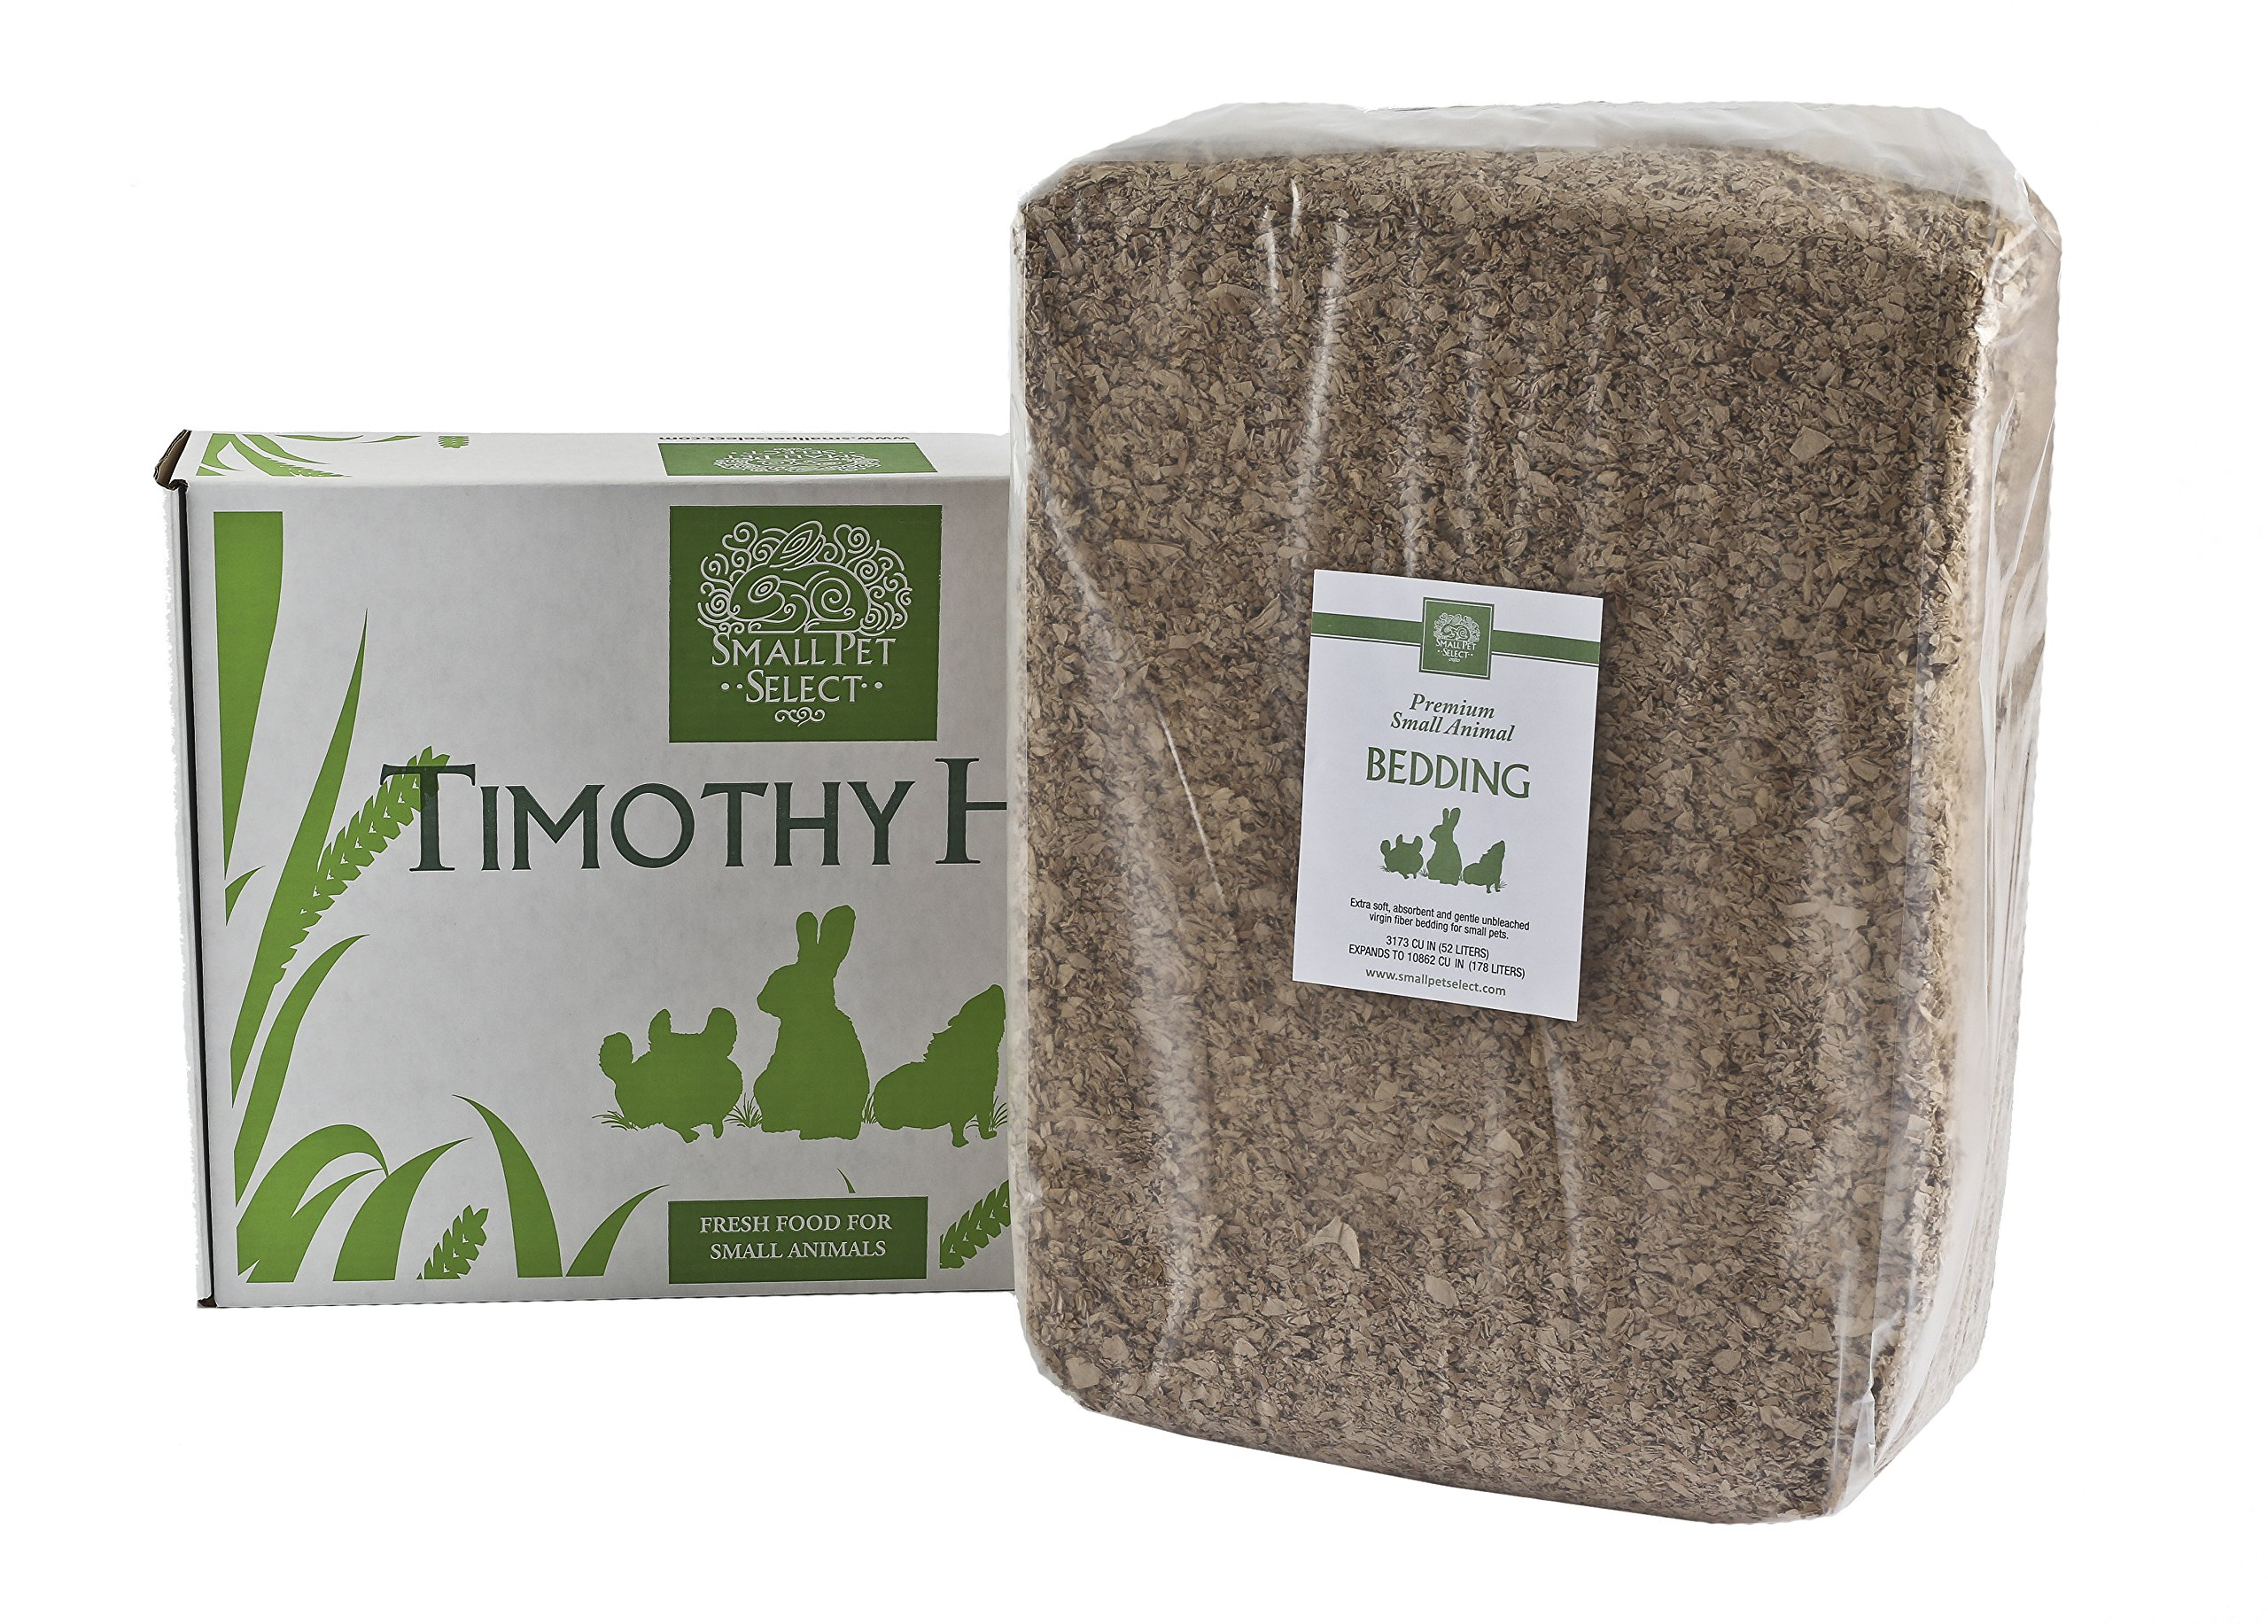 Small Pet Select Timothy Hay And Bedding Combo Pack: Timothy Hay (10 Lb.), Bedding (178L) by Small Pet Select